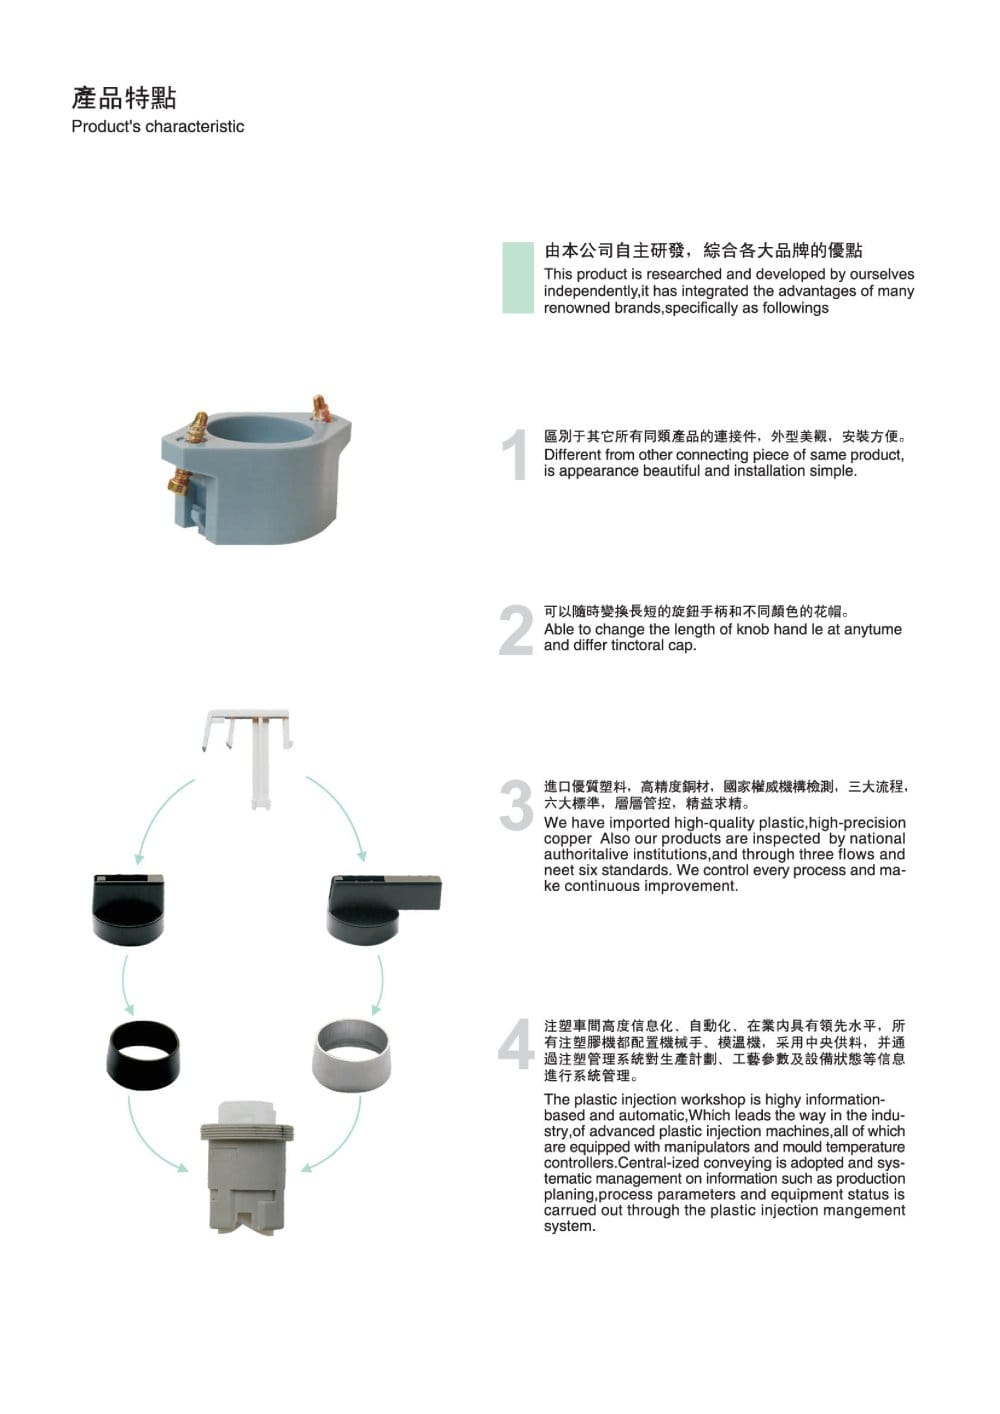 Push Button Switch Indicator Light Utility Electrical Co Ltd Wiring Diagram Rice Cooker 1 33 Pages